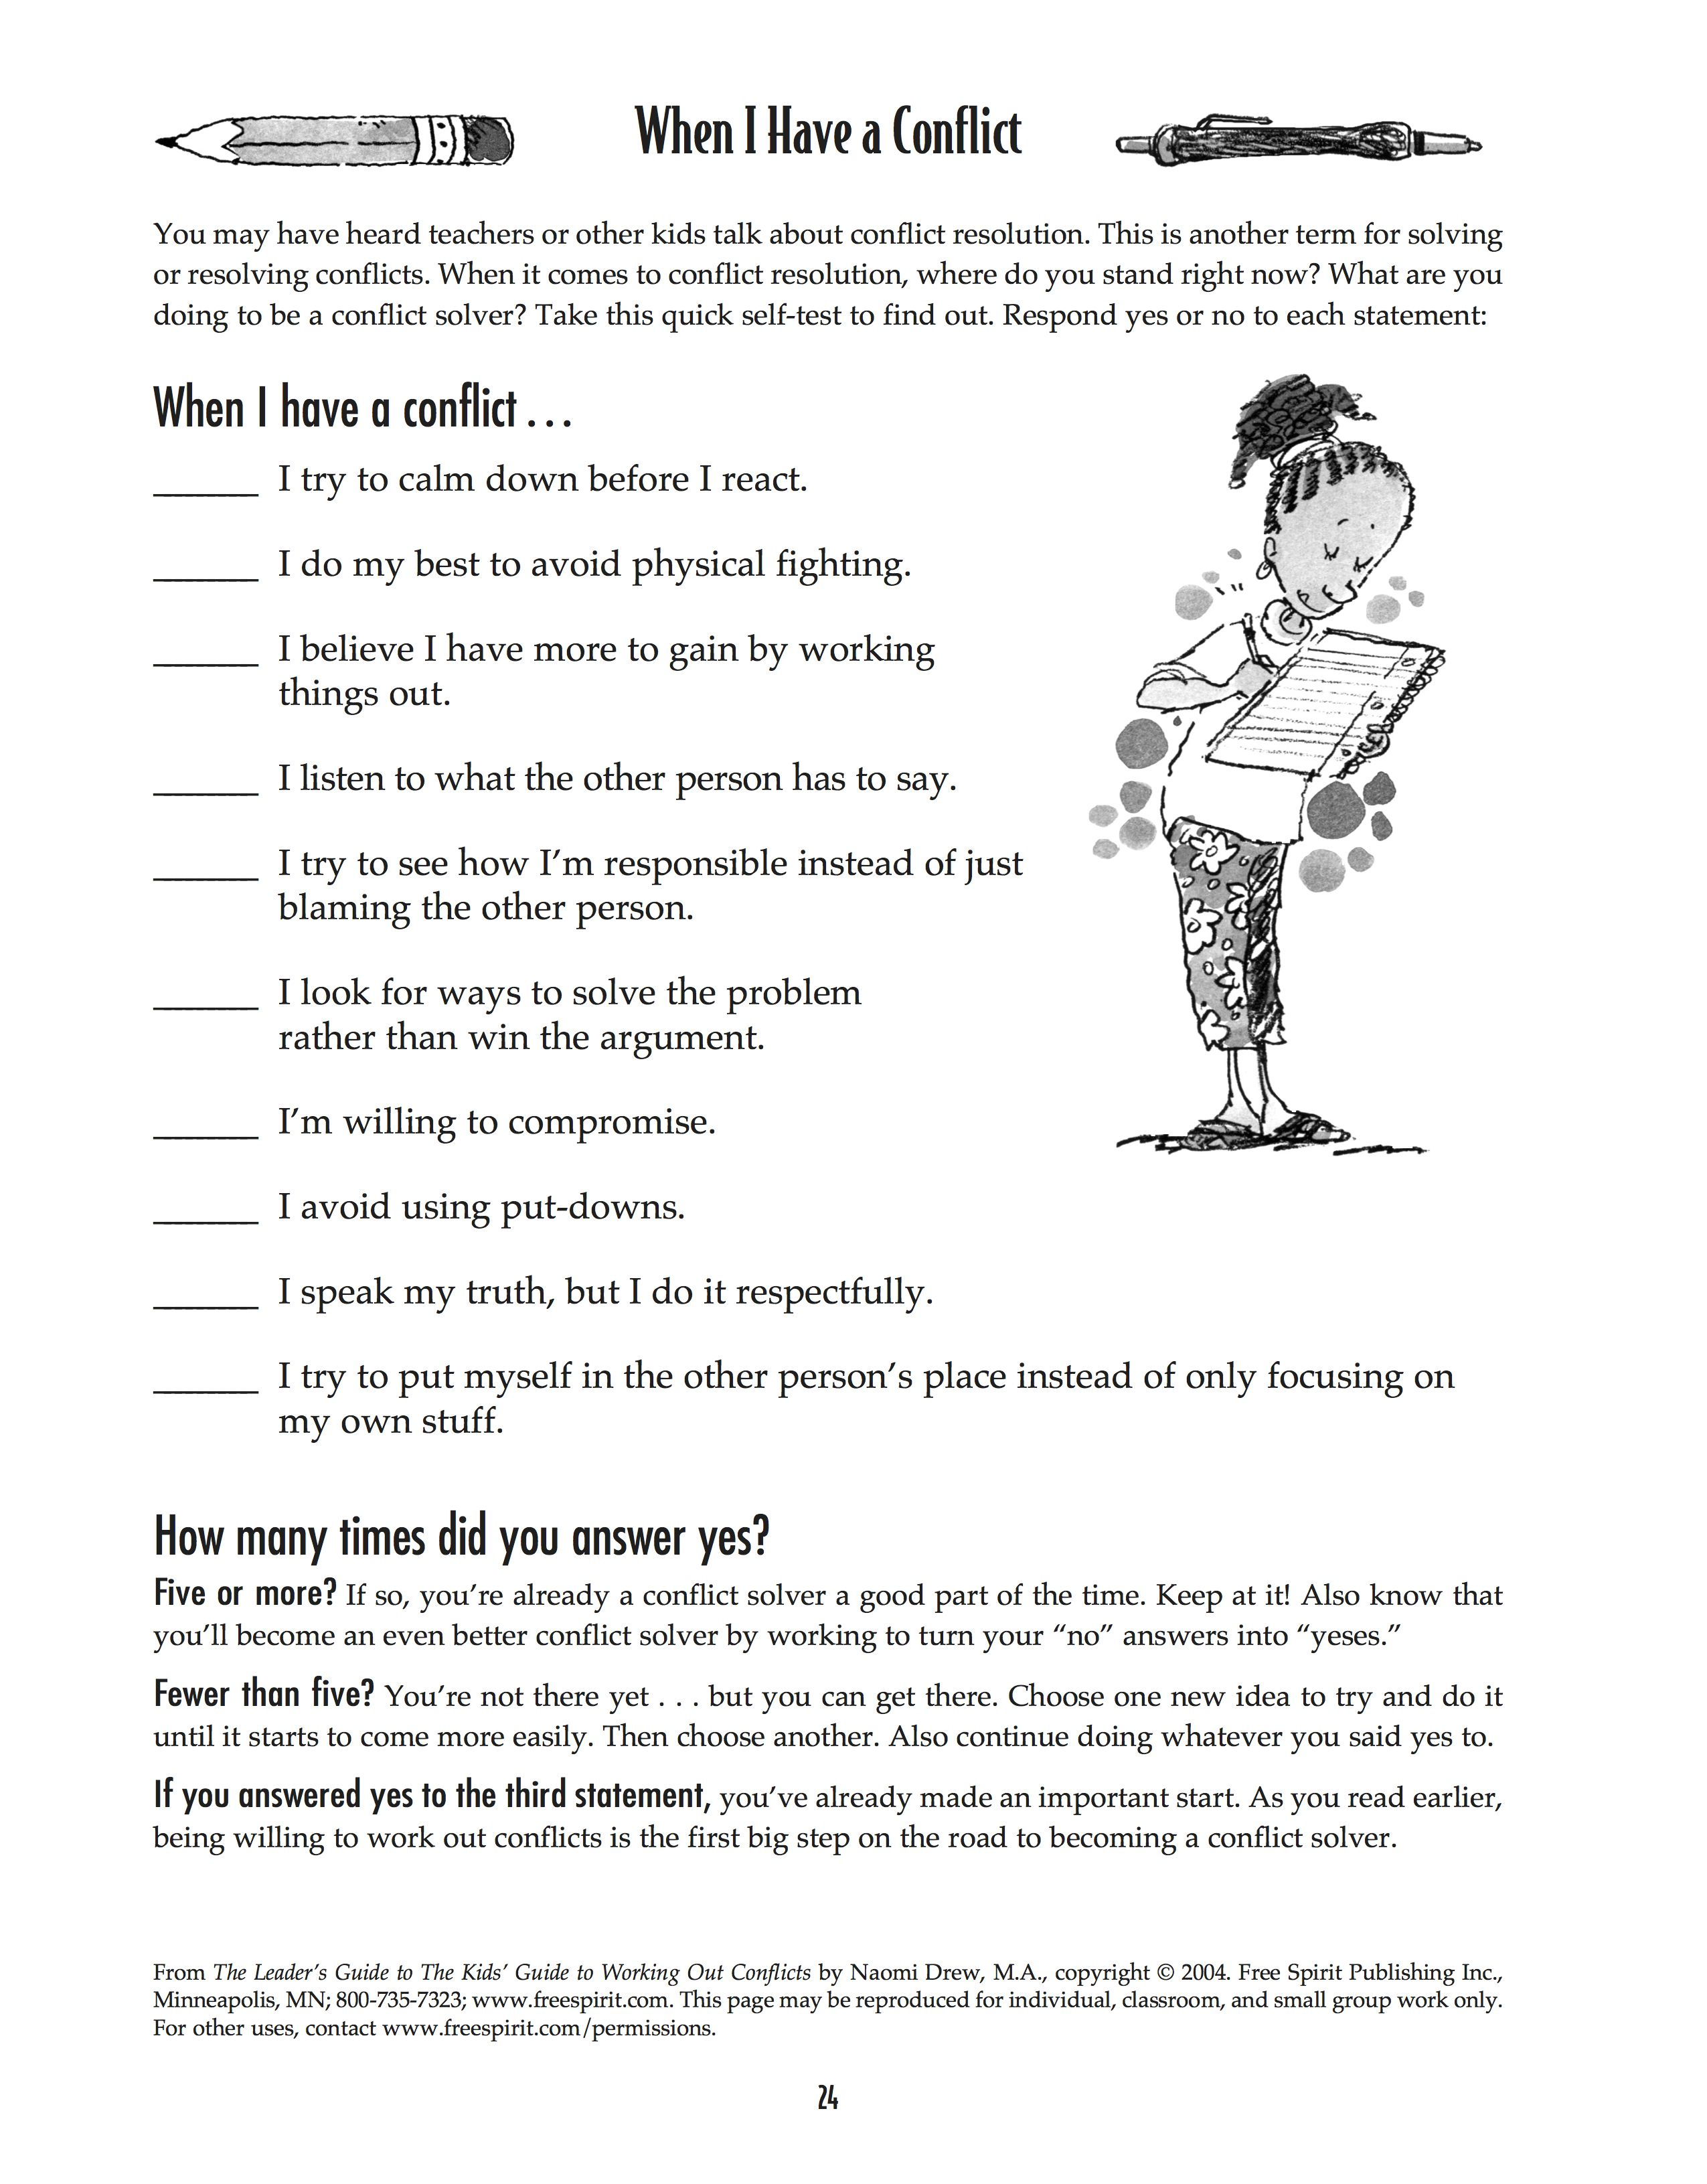 Free Printable Worksheet: When I Have A Conflict. A Quick Self-Test - Free Printable Social Stories Worksheets